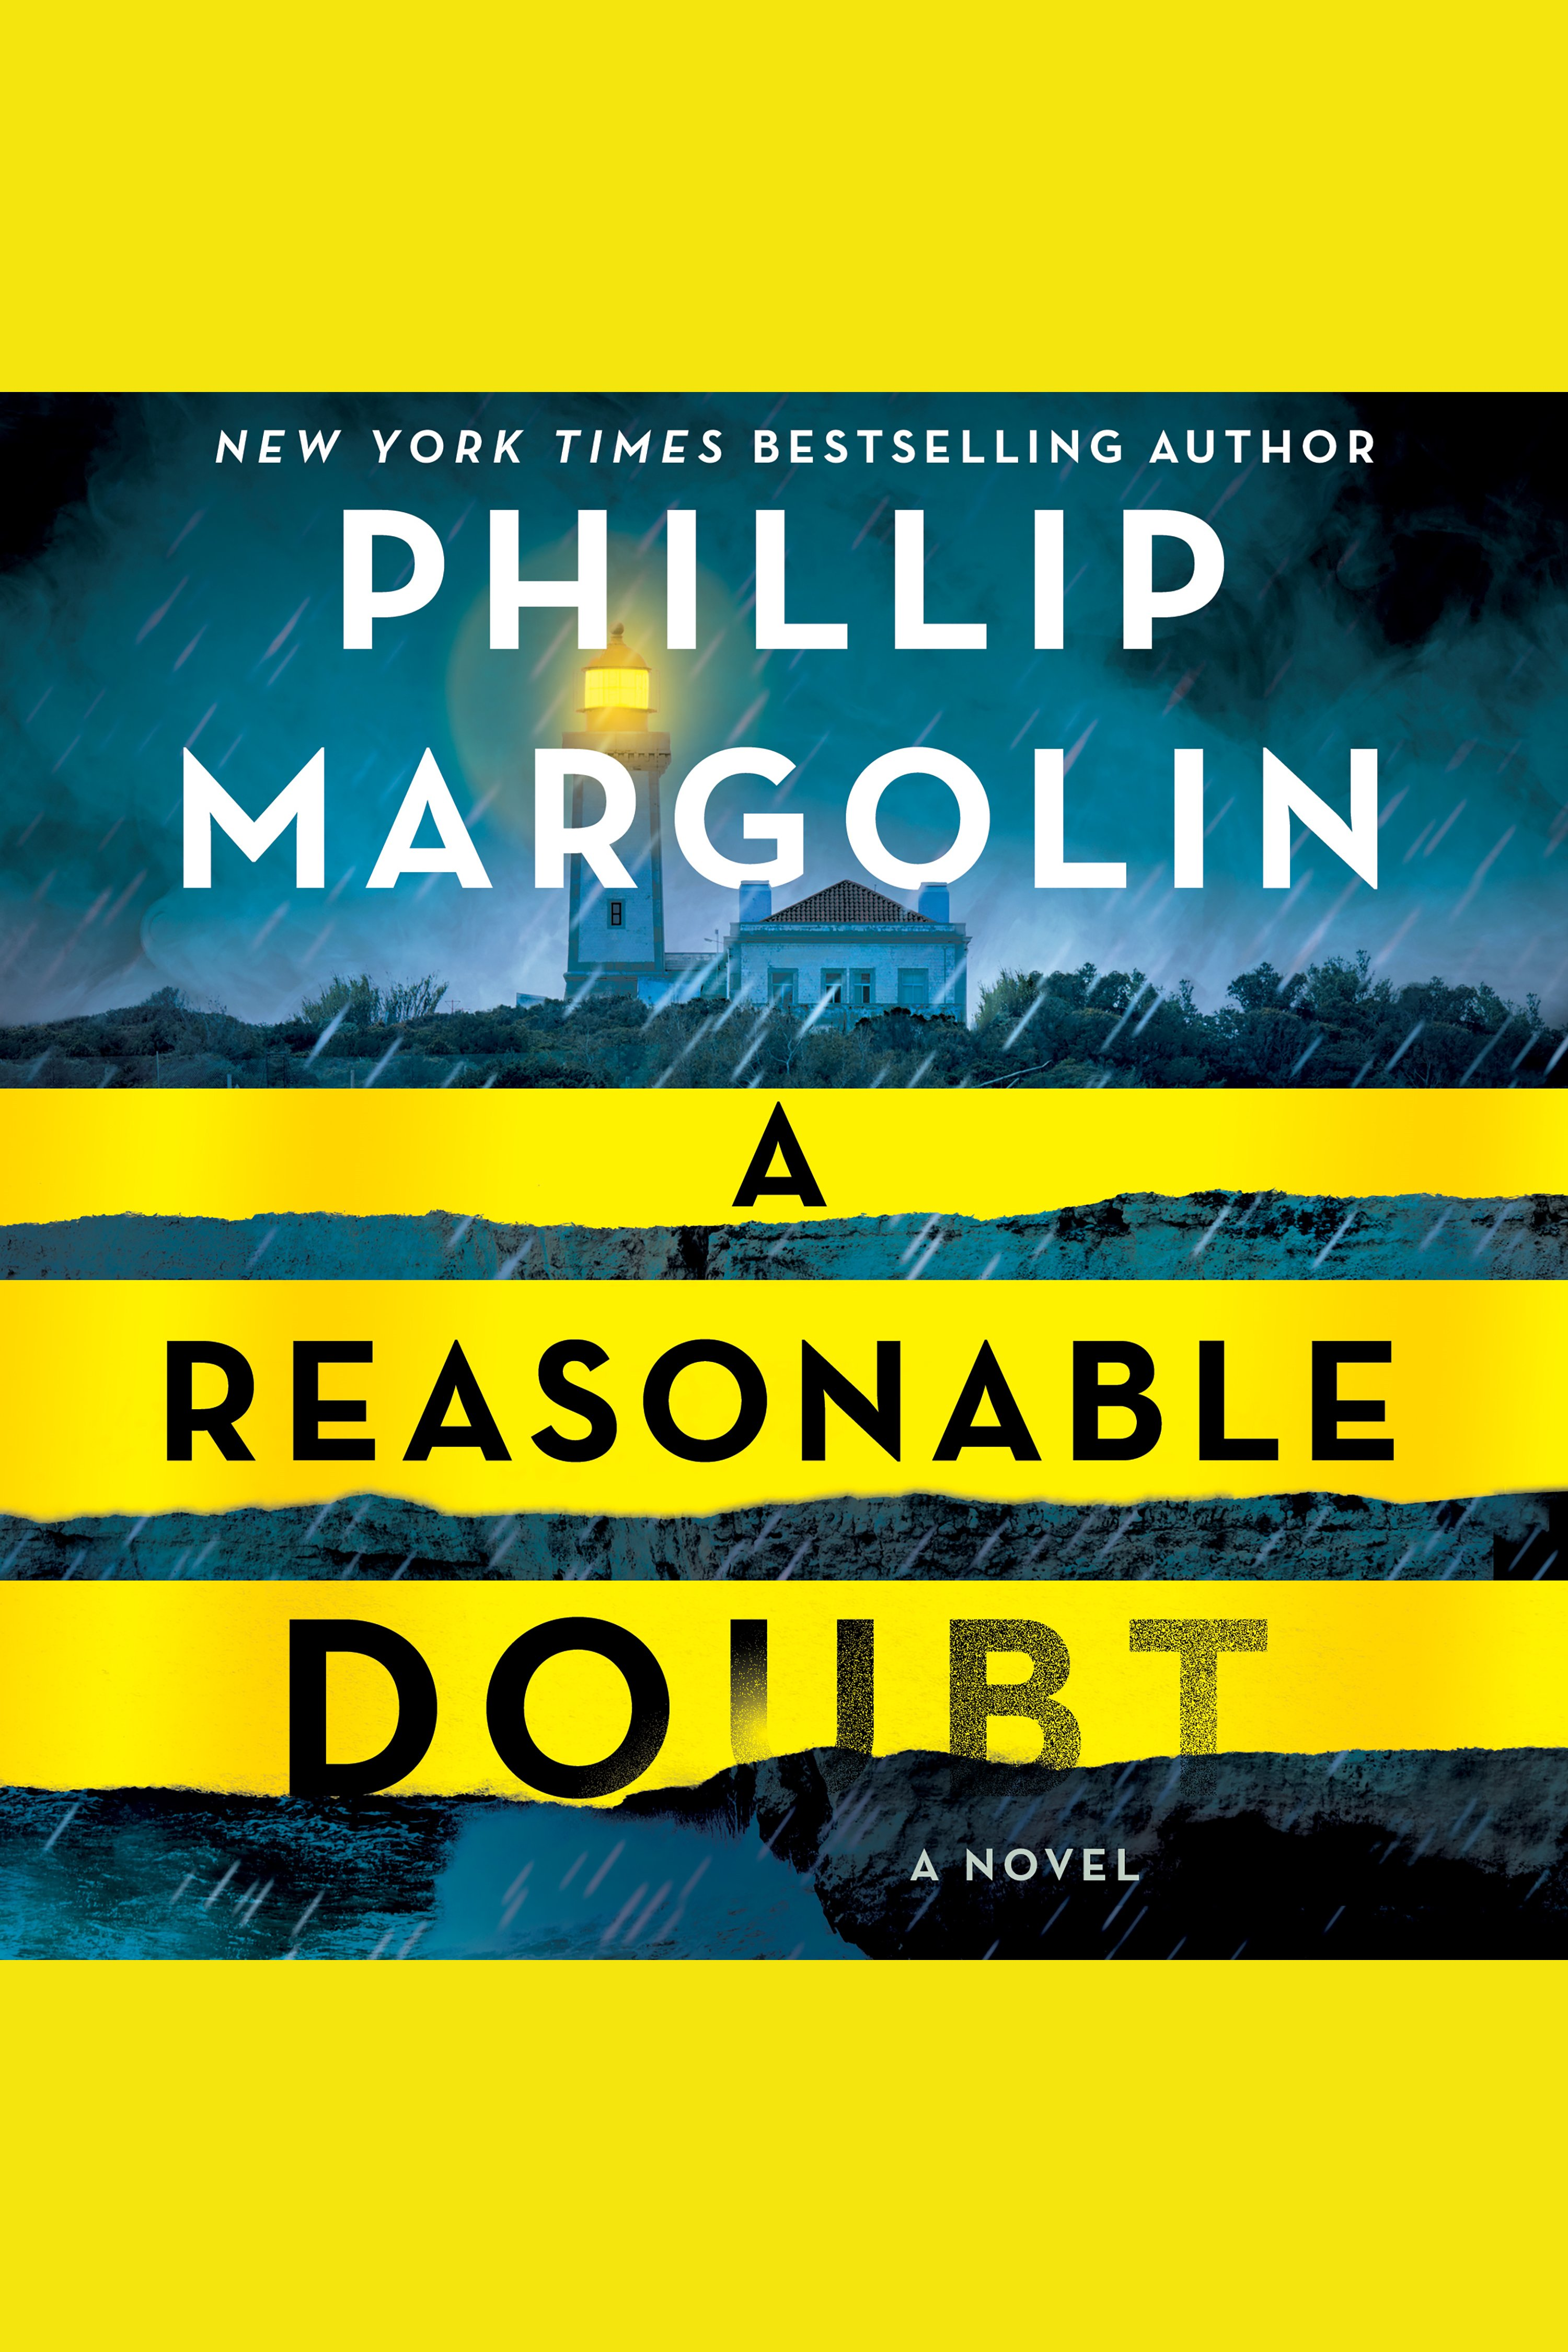 A reasonable doubt cover image